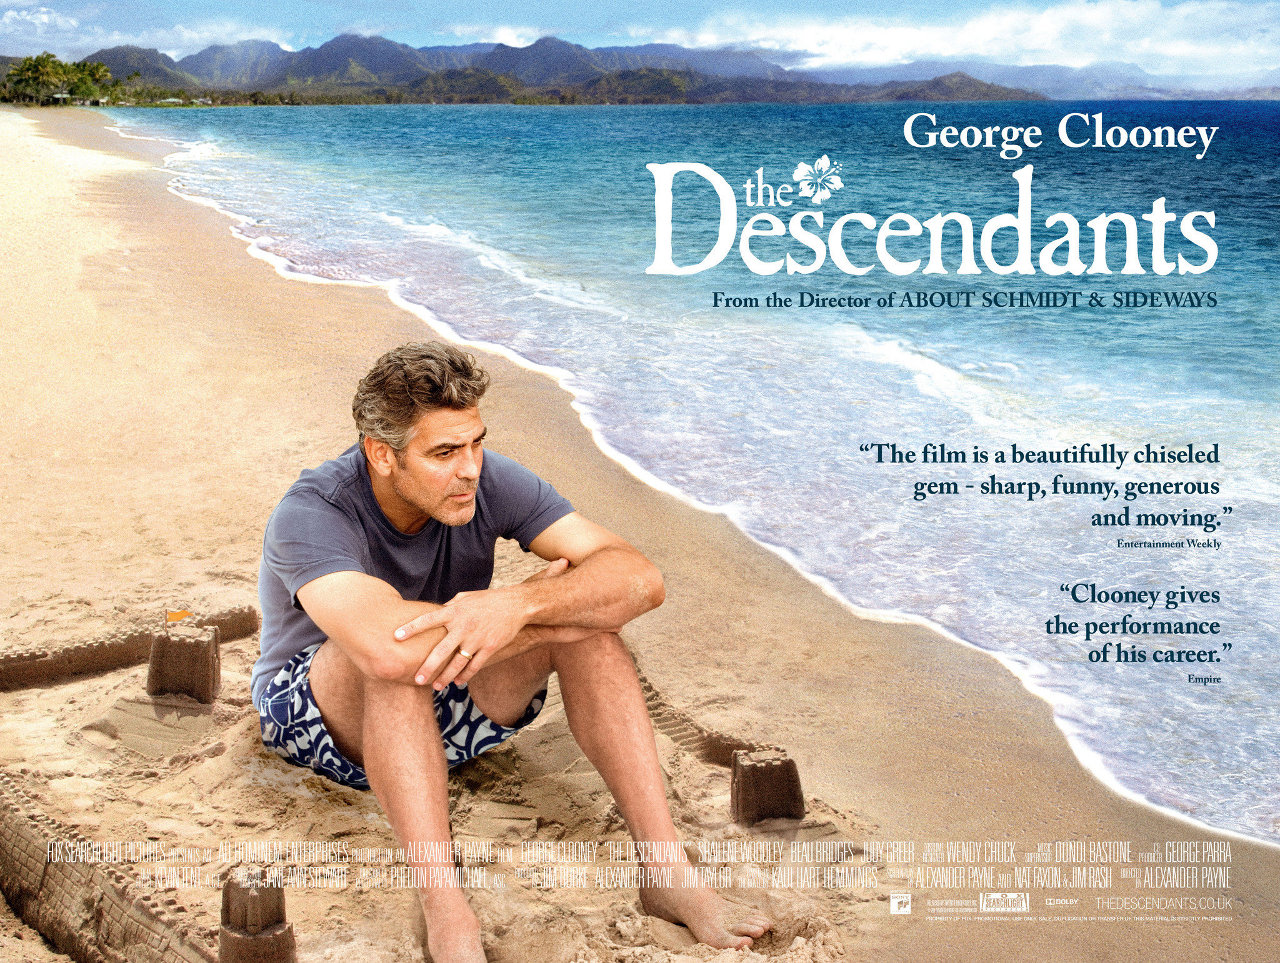 CINESPERA AWARDS 2011 Ganadora = The Descendant